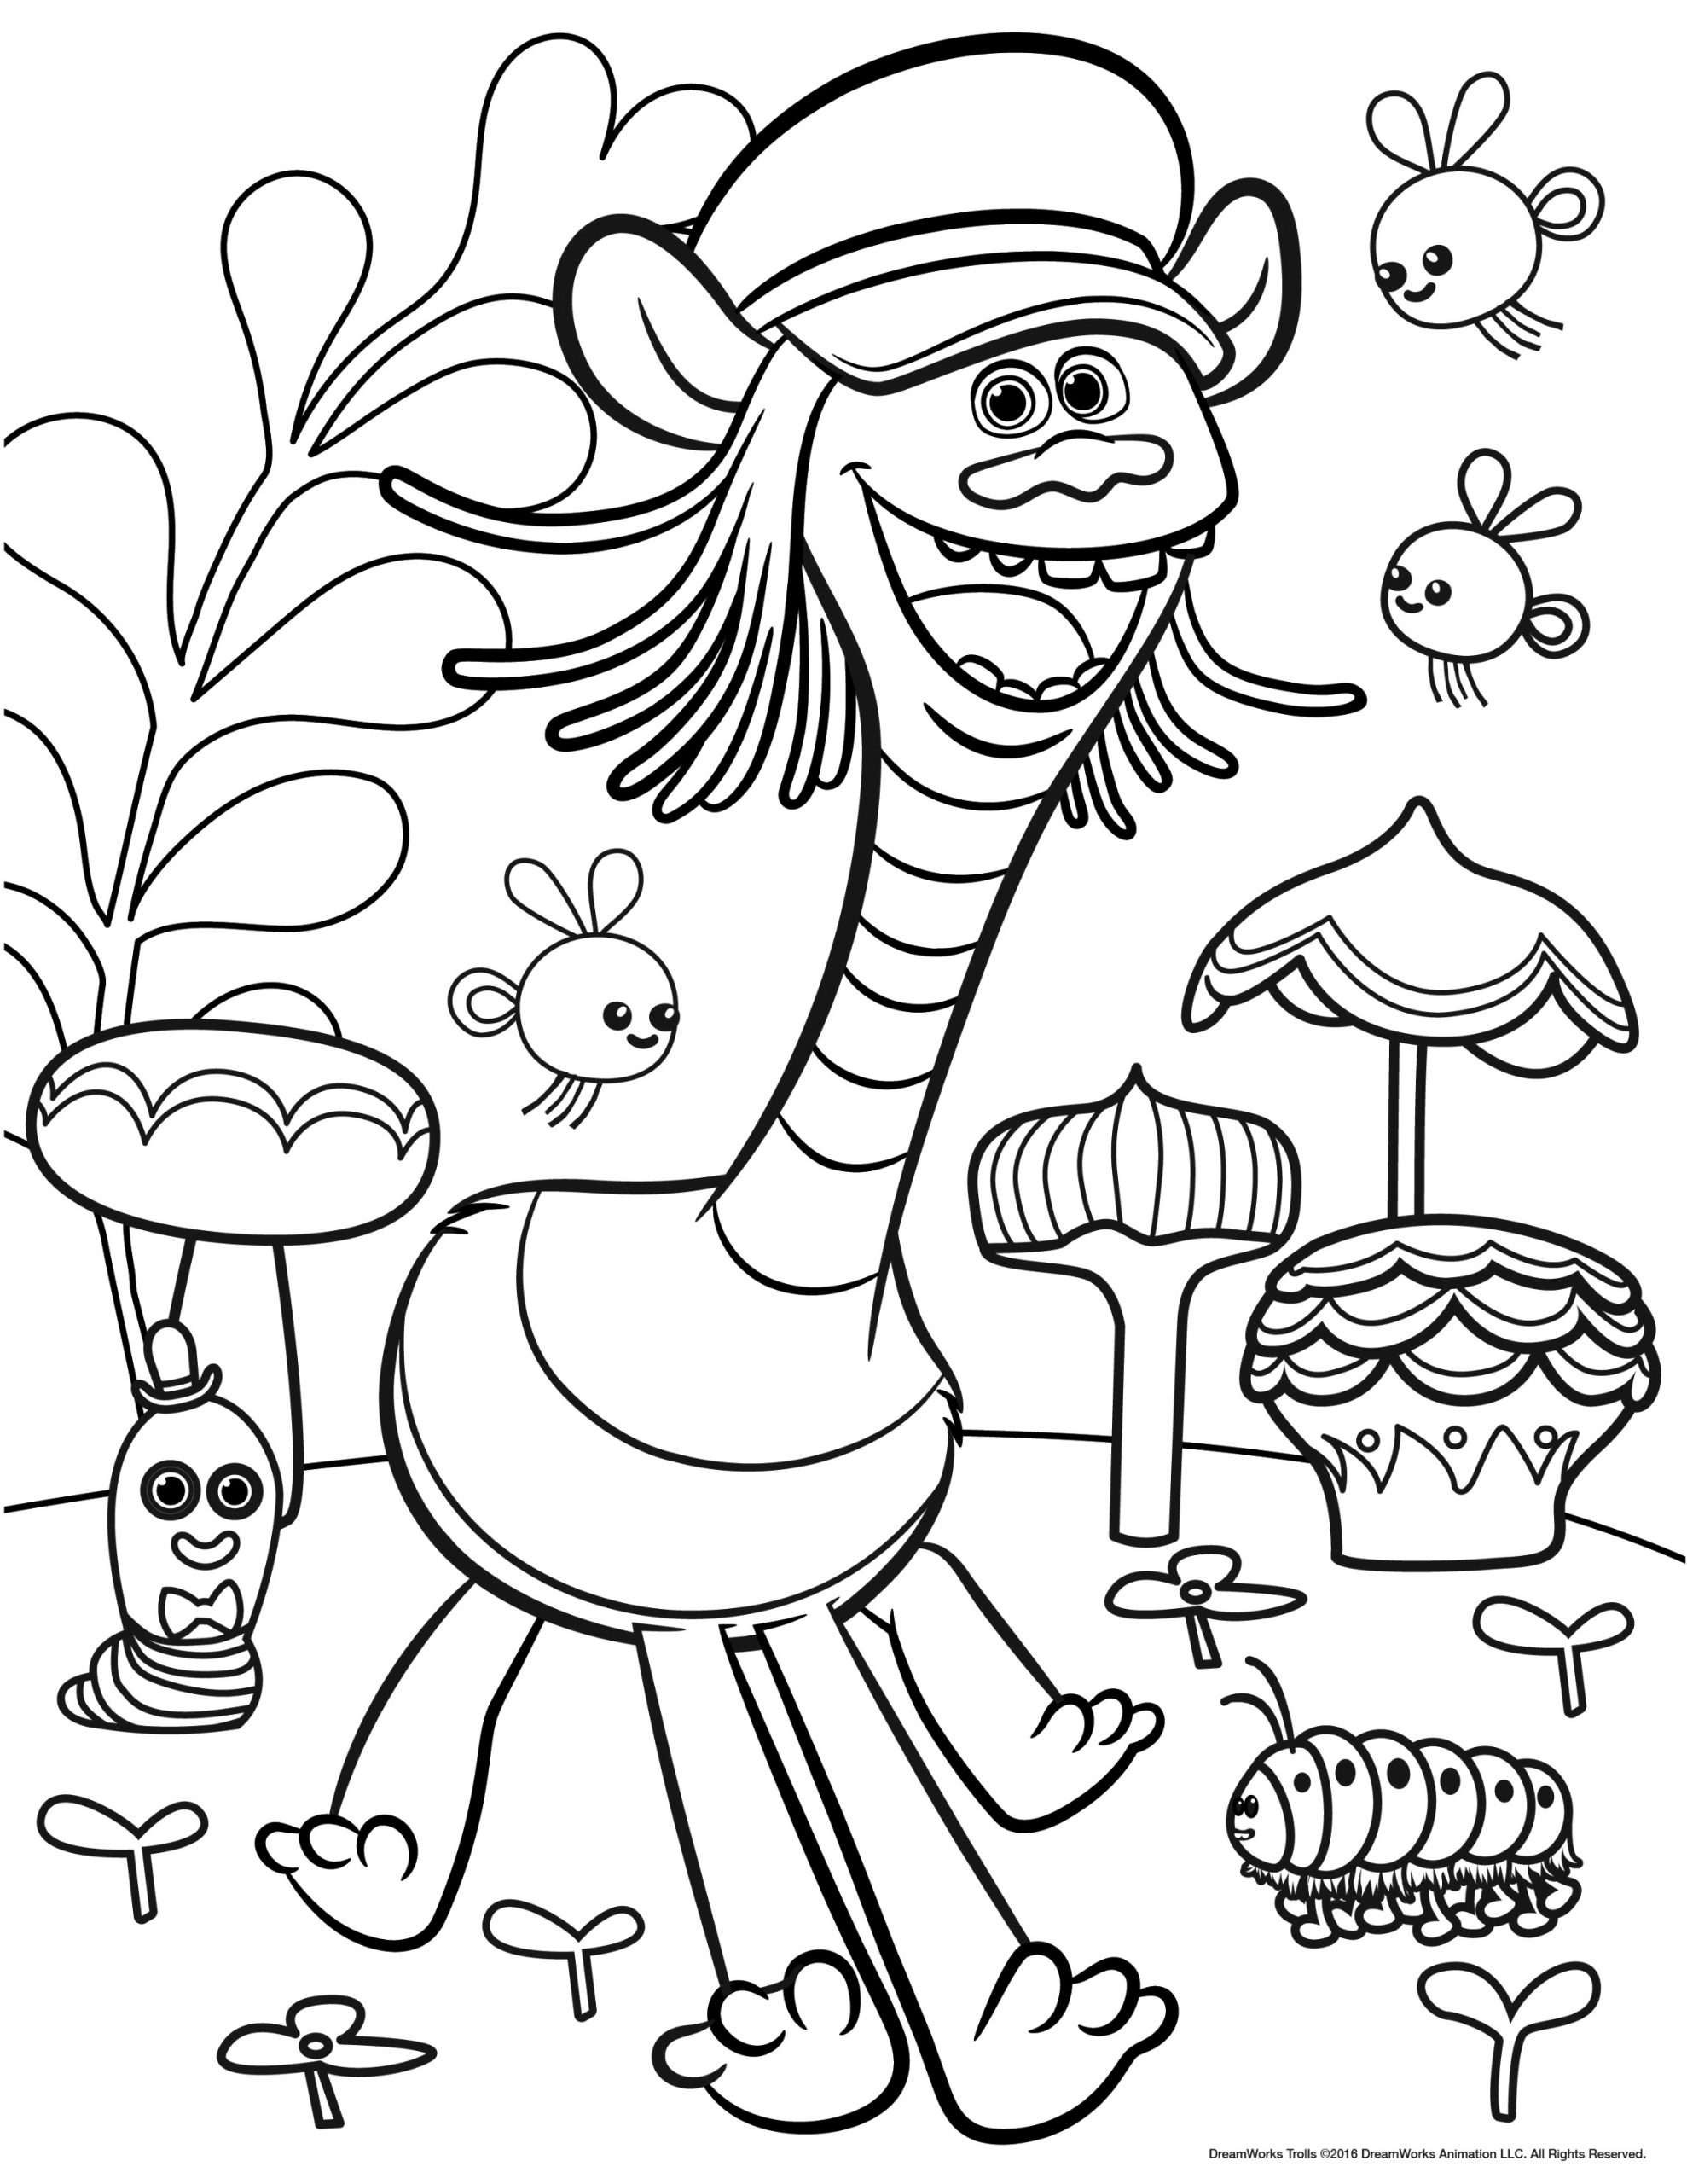 Free online trolls coloring pages to color your life